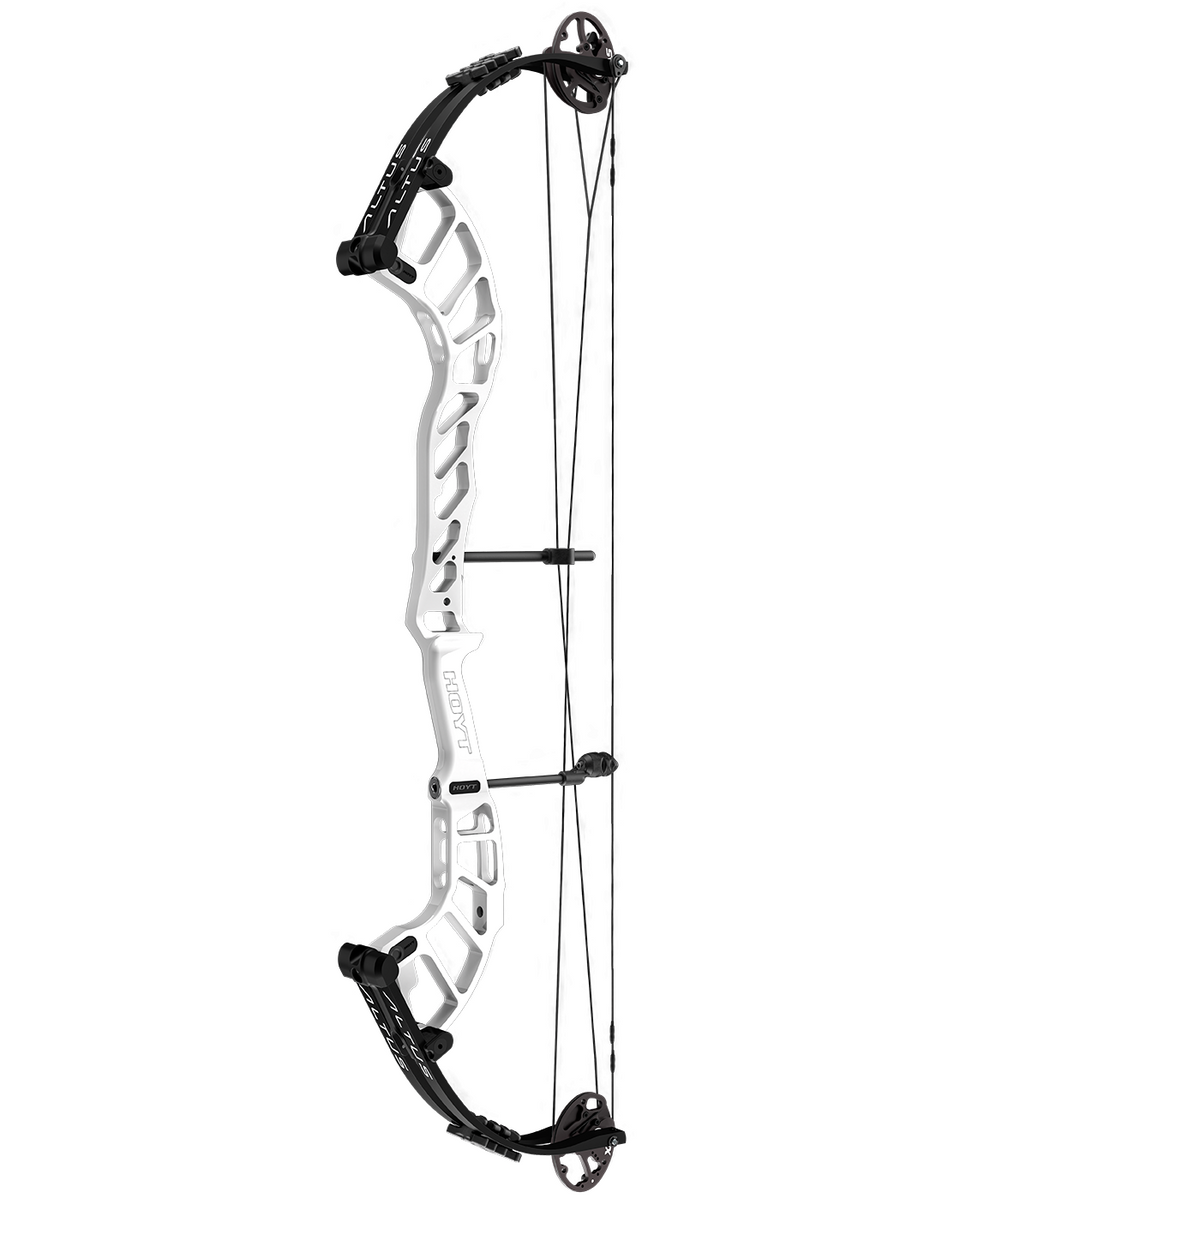 Hoyt Altus SVX Compound Bow In Stock